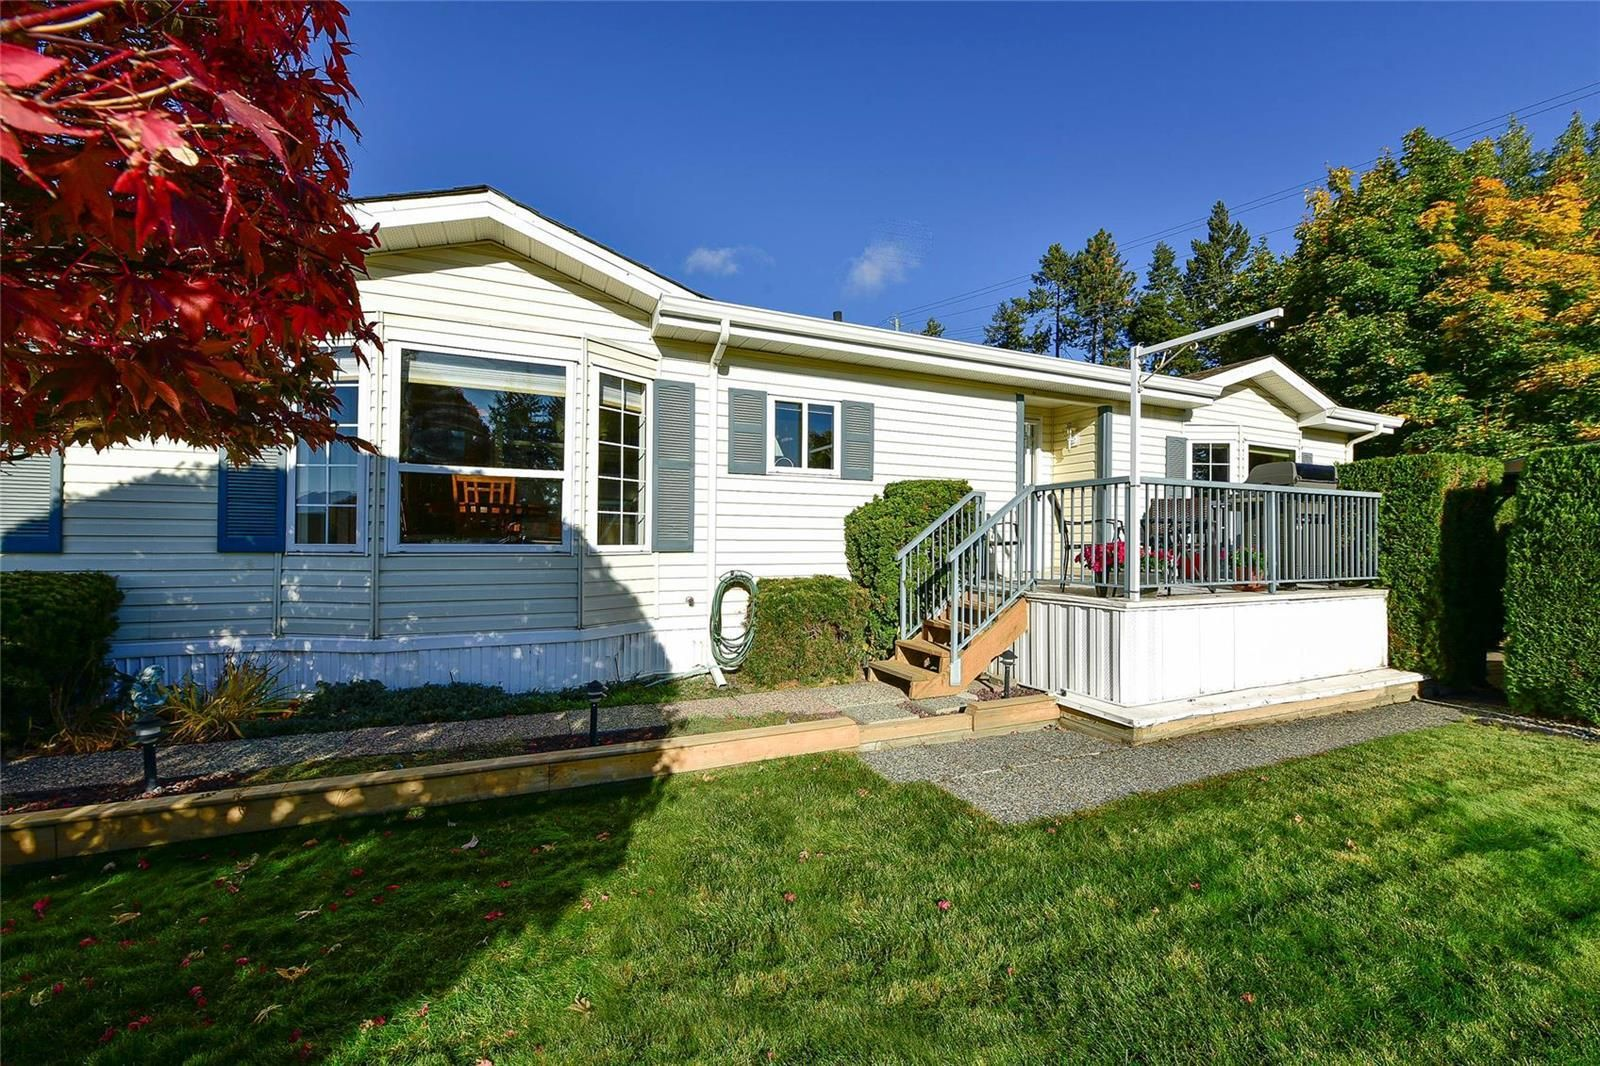 Main Photo: #11 1850 Shannon Lake Road, in West Kelowna: House for sale : MLS®# 10241684